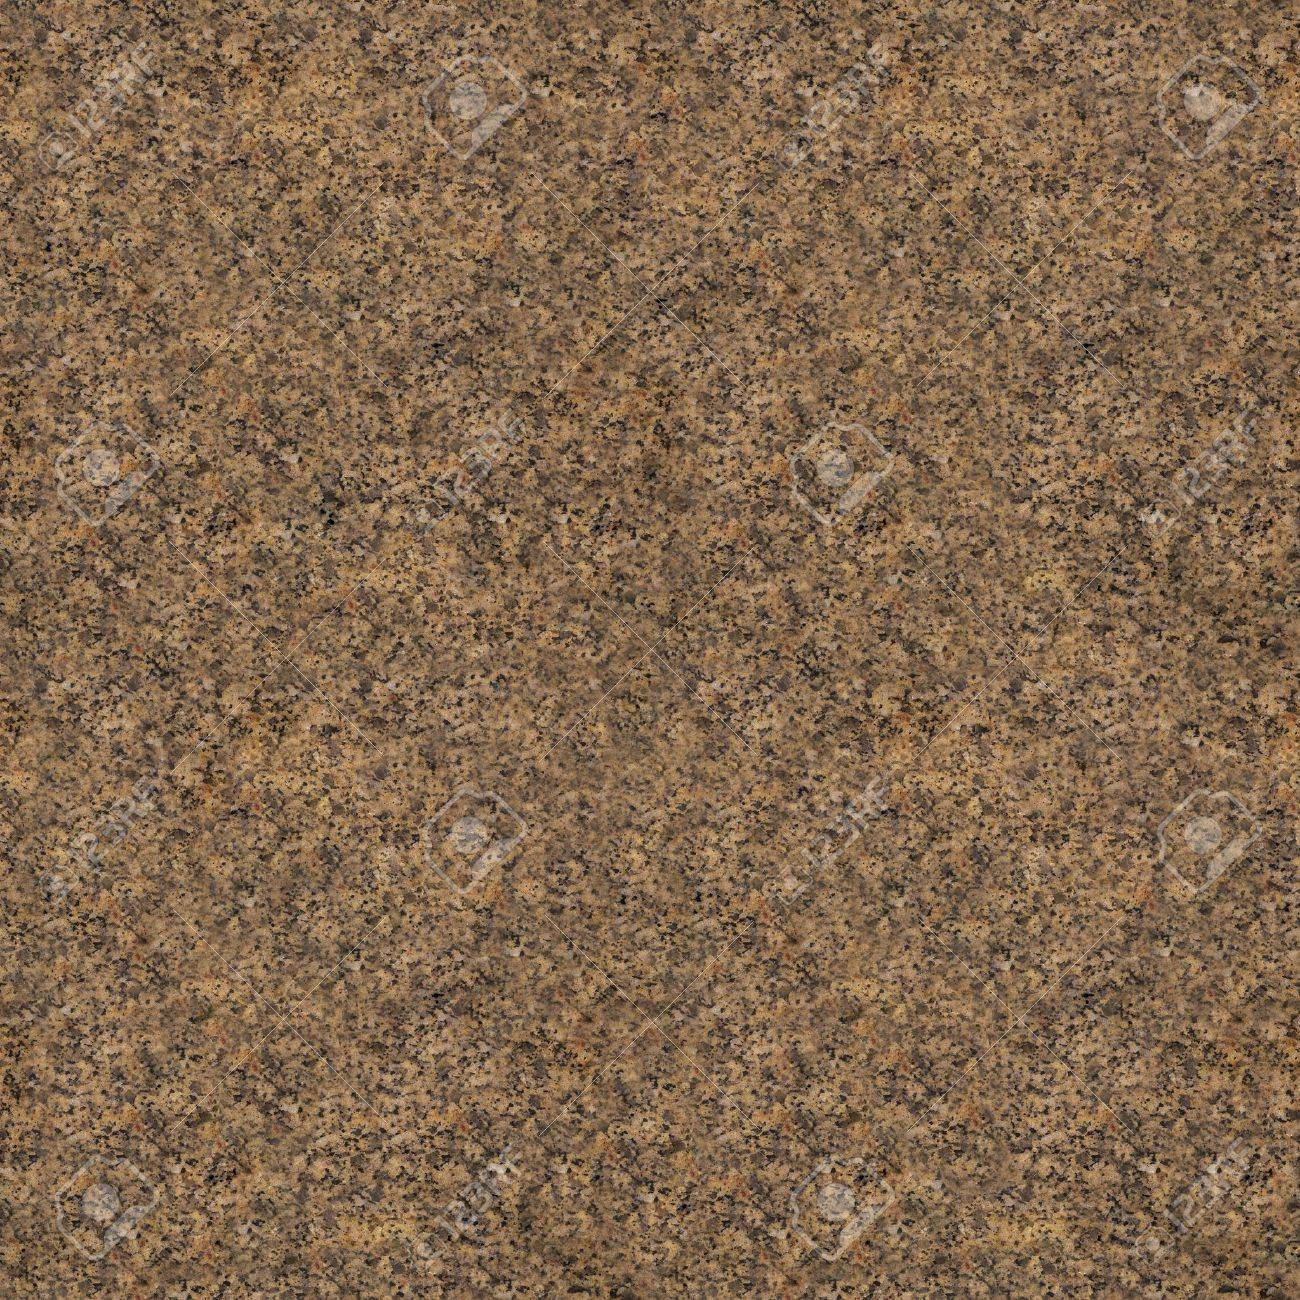 Tiling brown and black granite texture or background. Stock Photo - 9654034